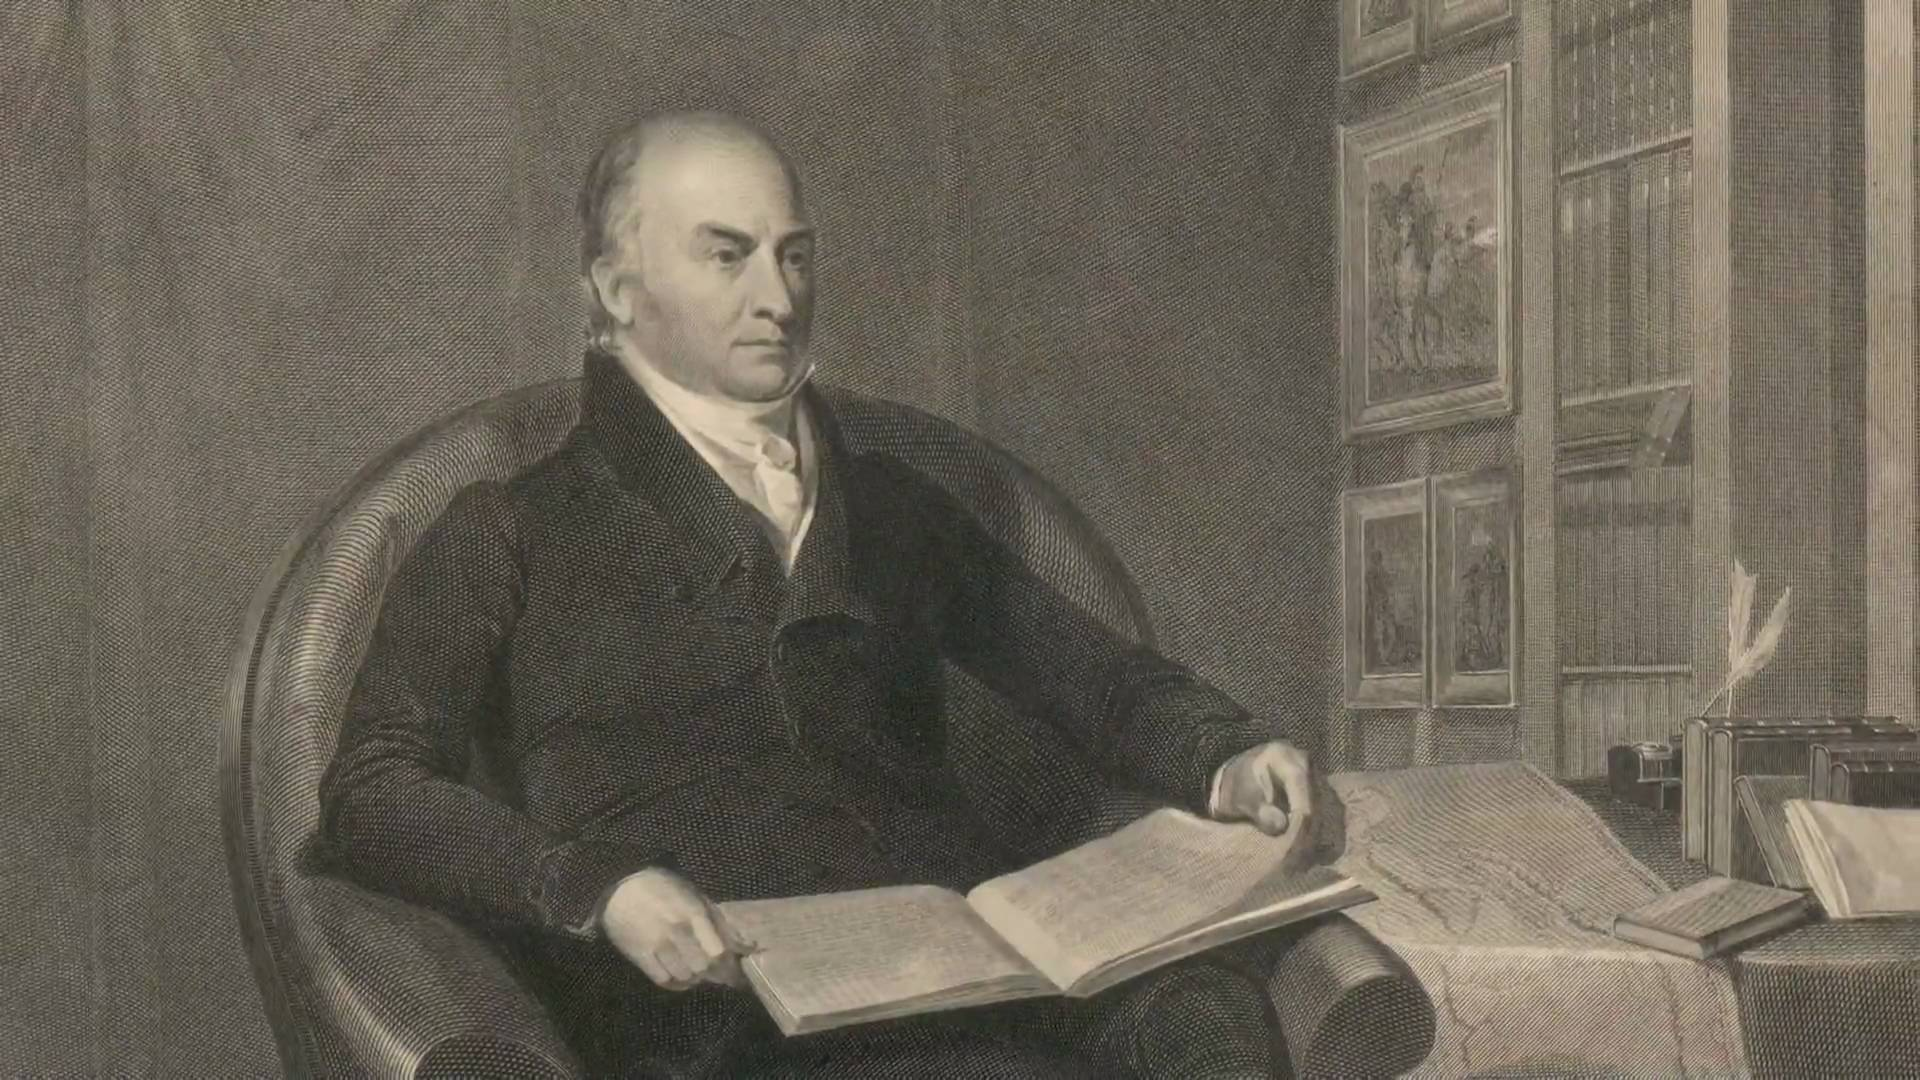 John Quincy Adams - Election of 1824